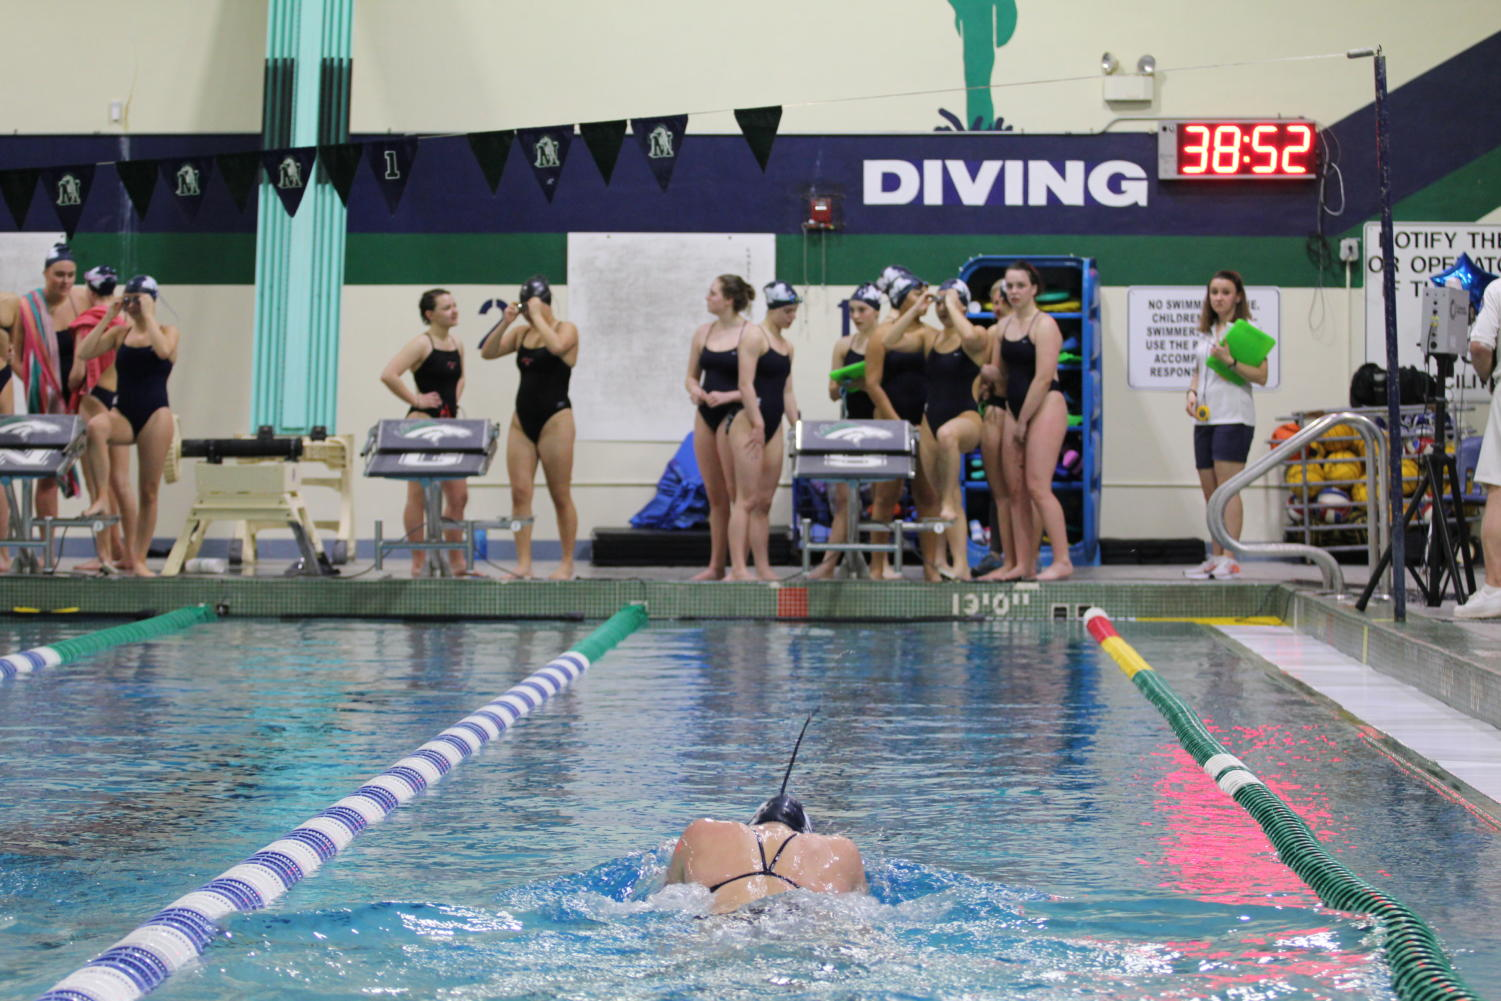 Sarah+Rosson%2C+senior%2C+swims+in+a+100-meter+breast+event.+Rosson+has+been+on+the+team+for+all+four+years+of+her+high+school+career.+%0A